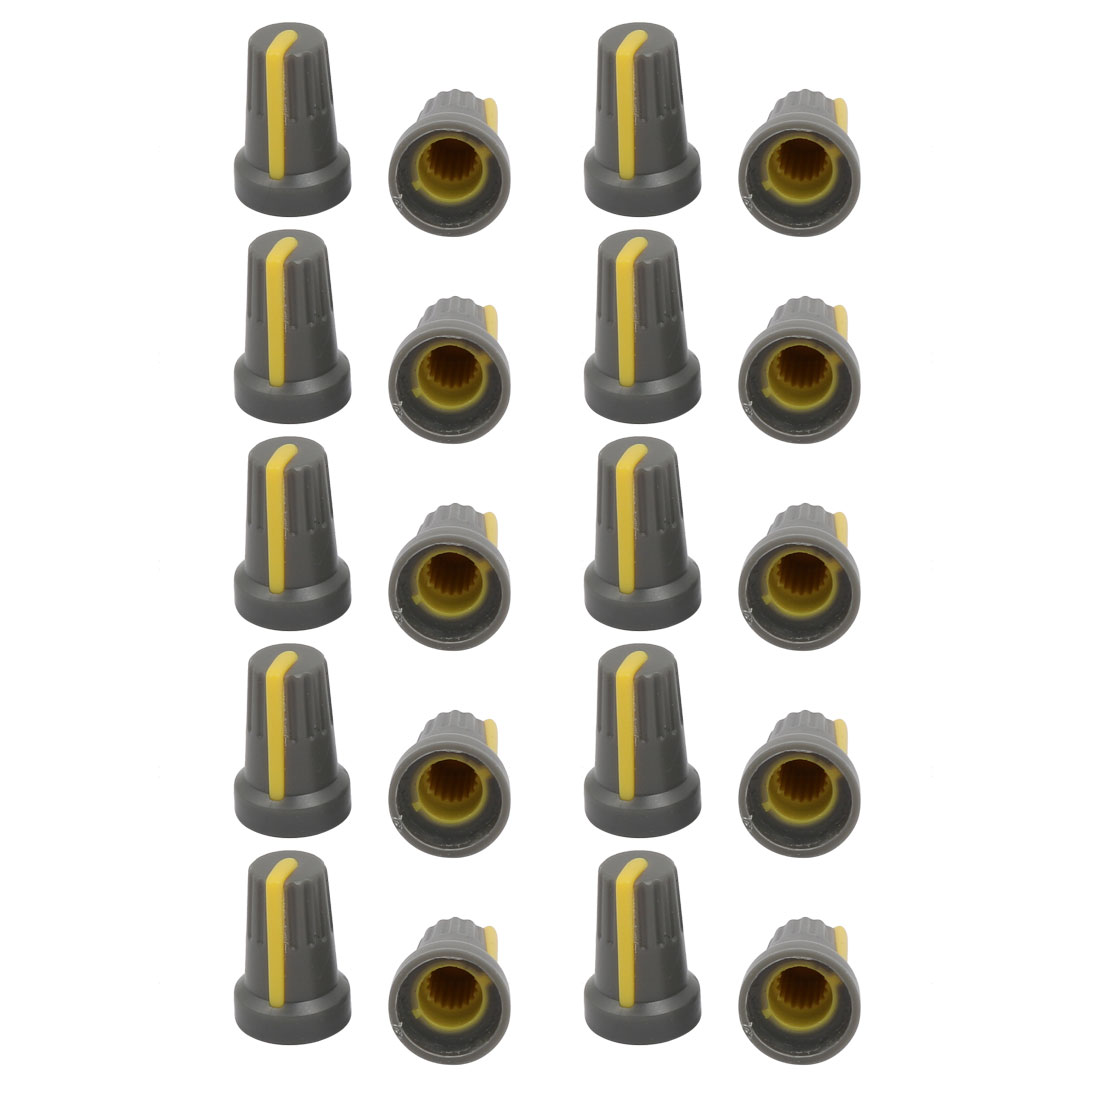 20Pcs 13.6mm Dia 20.4mm Height Plastic Potentiometer Volume Control Rotary Knob Cap Gray Yellow